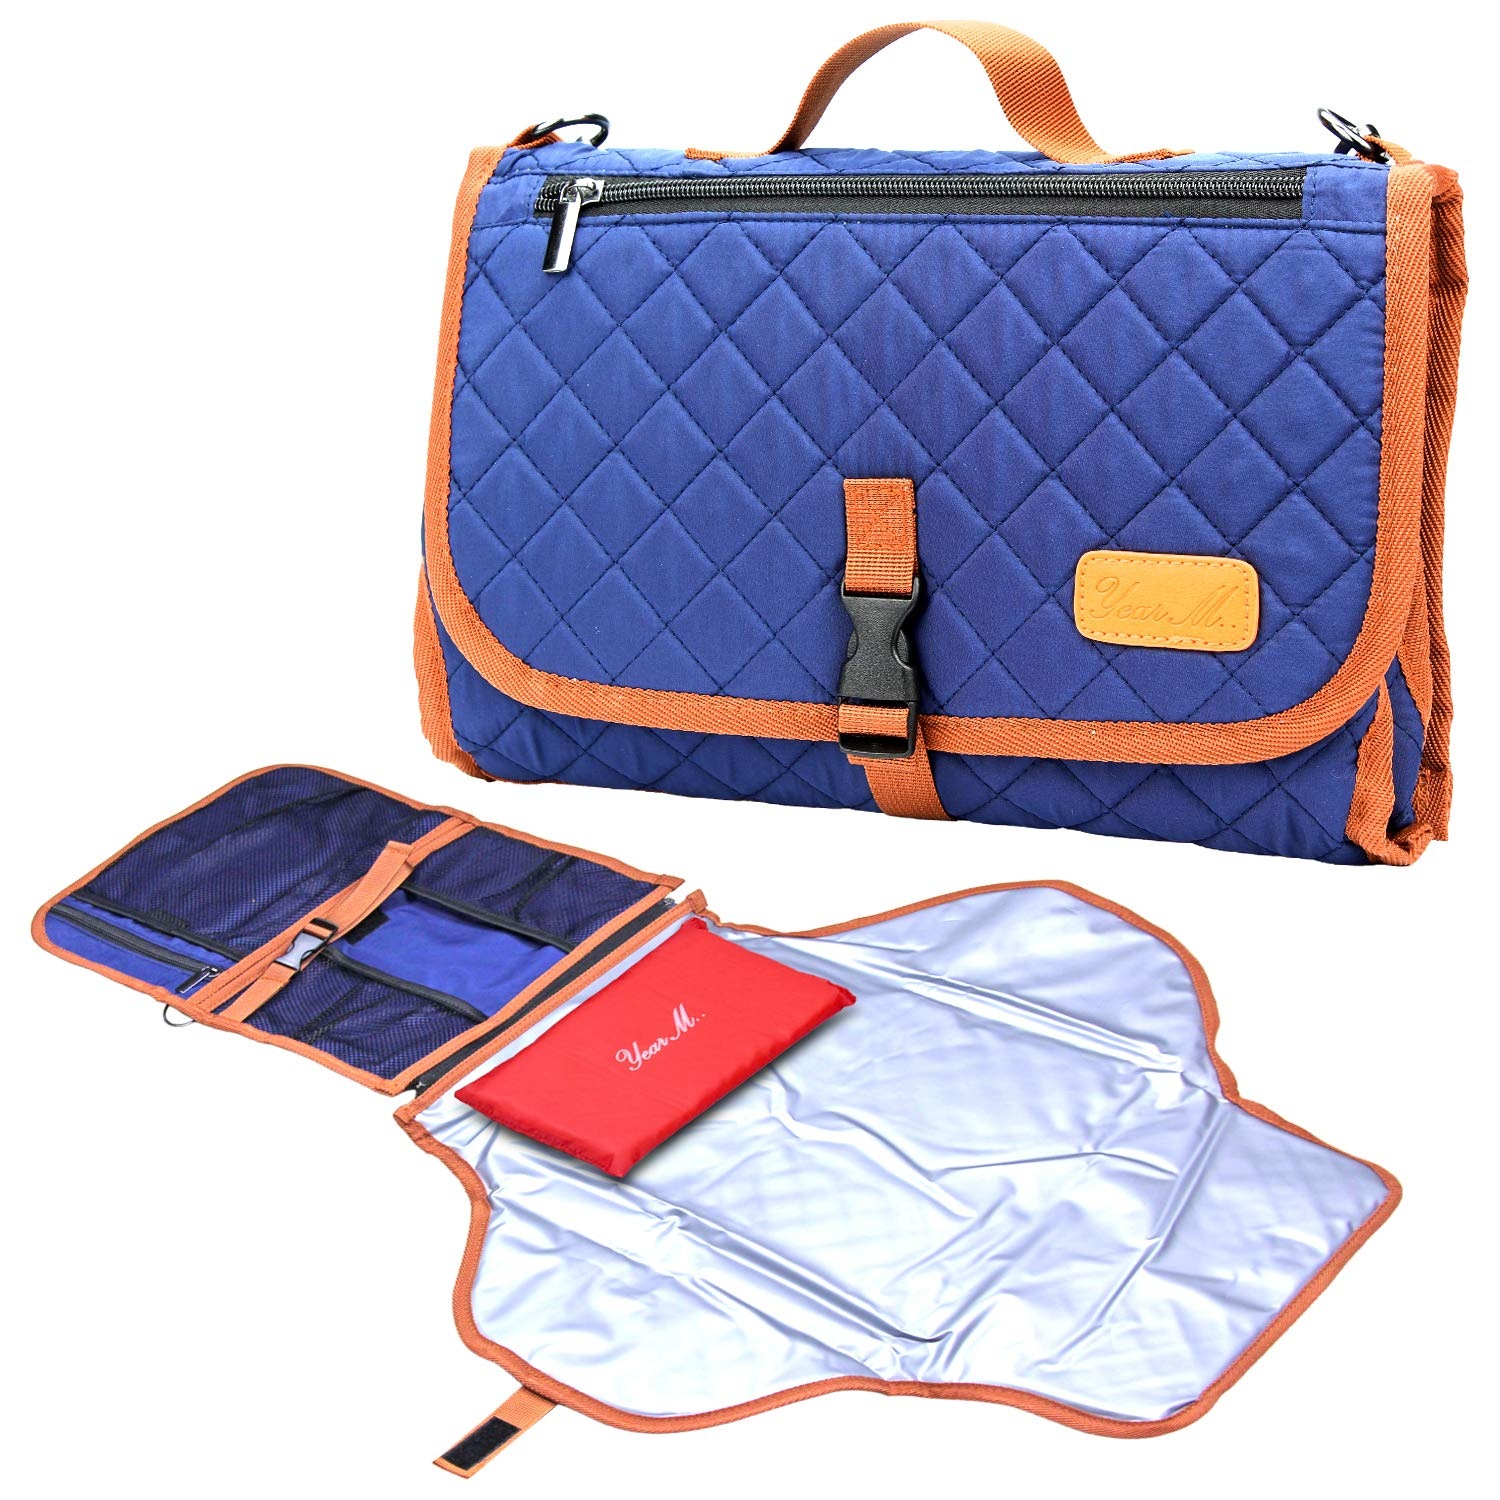 Portable Diaper Changing Pad Built-in Head Cushion Waterproof Baby Travel Changing Station (Blue), YearM.